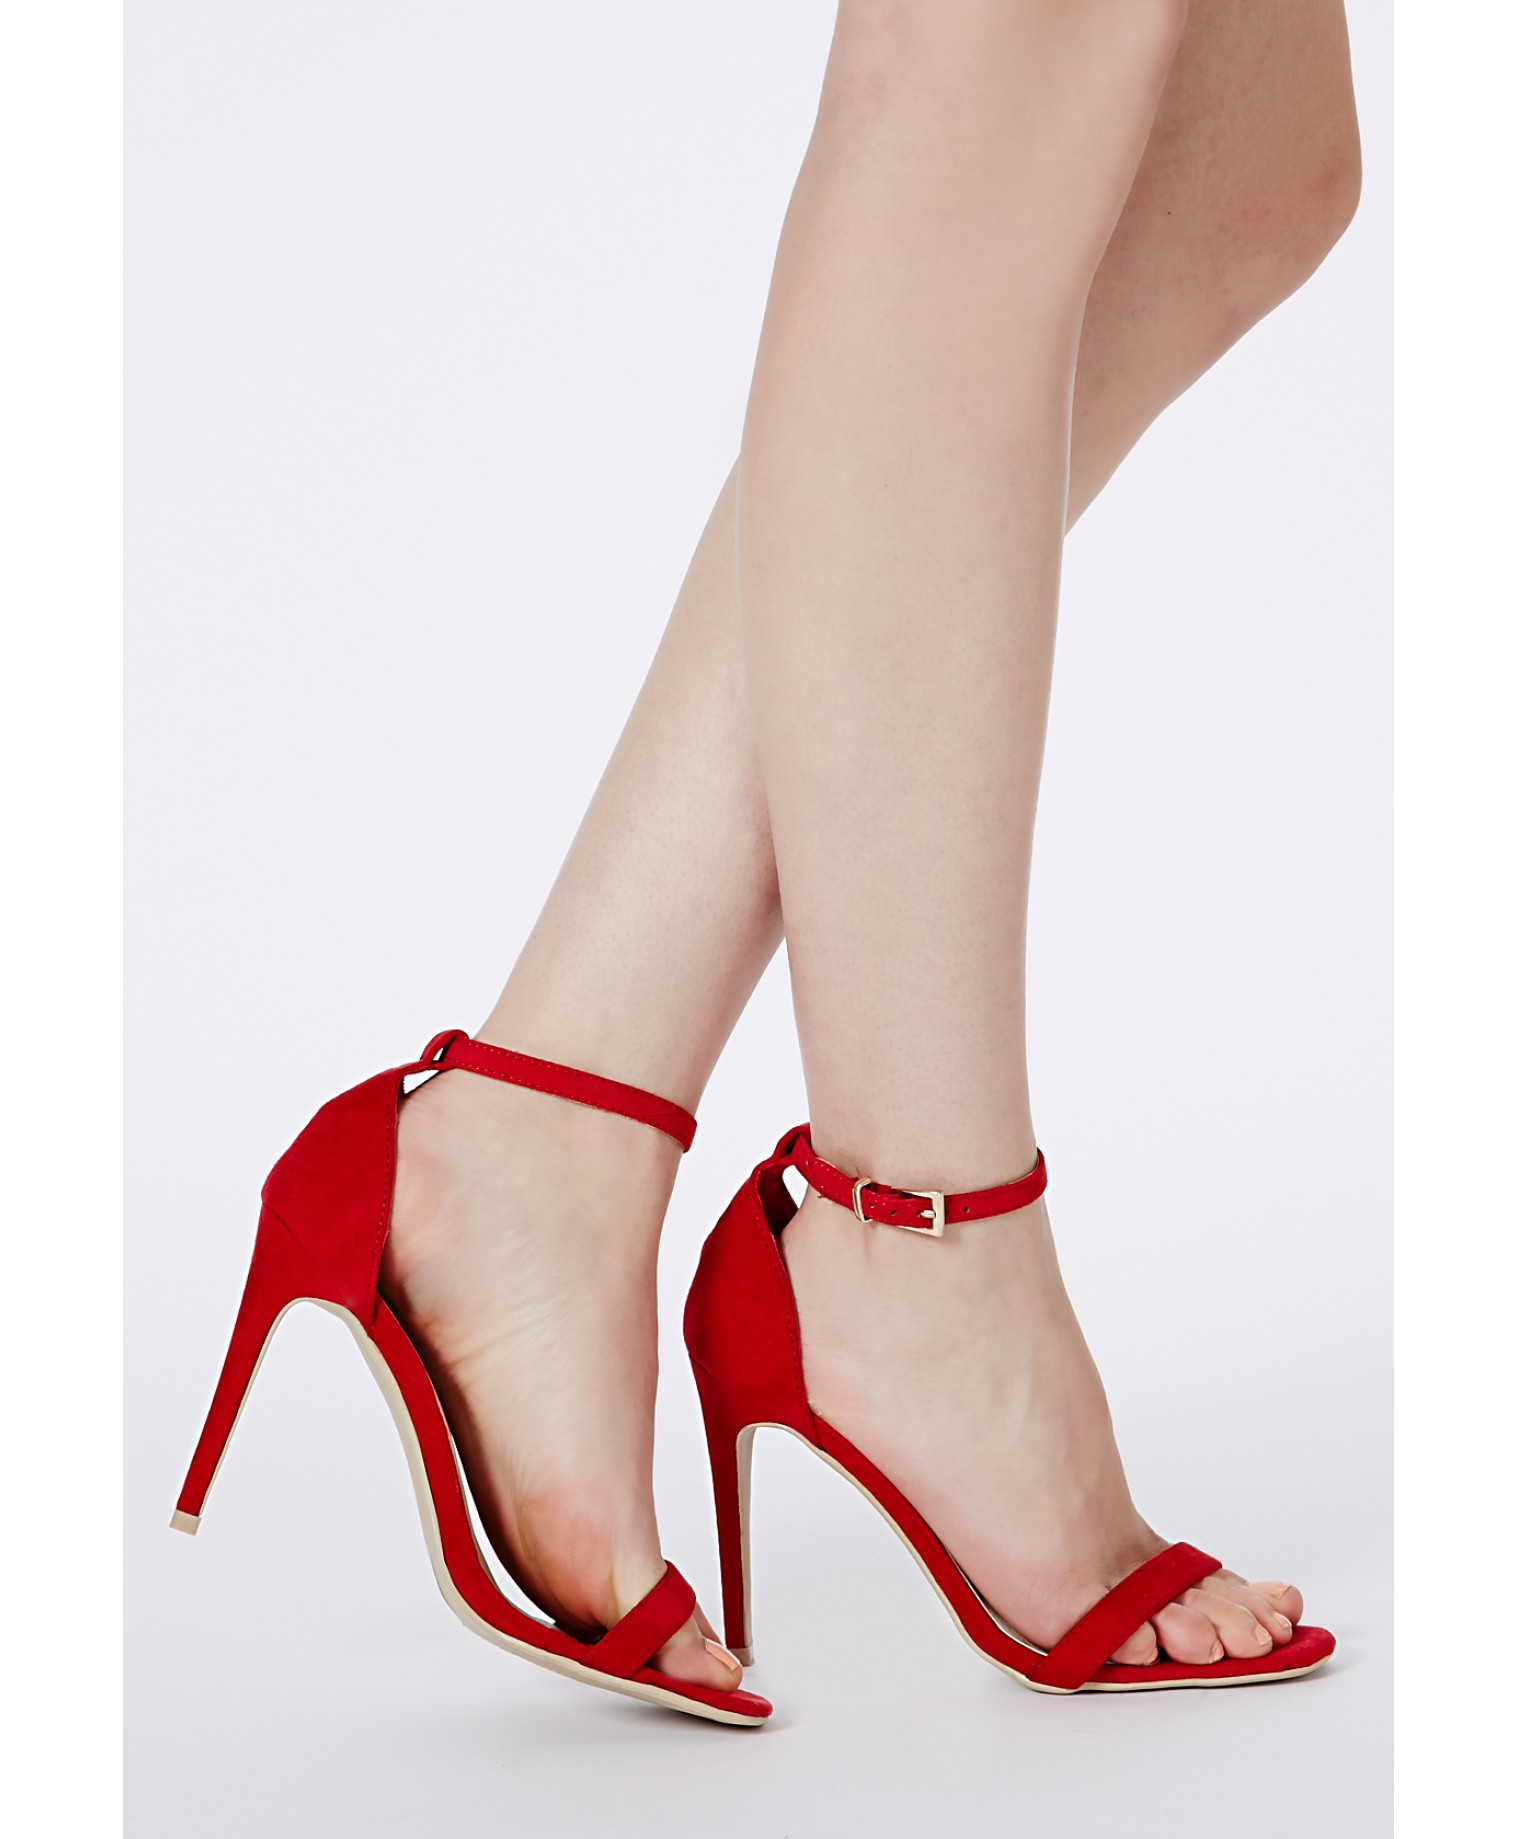 Clara suede strappy sandals in red 2